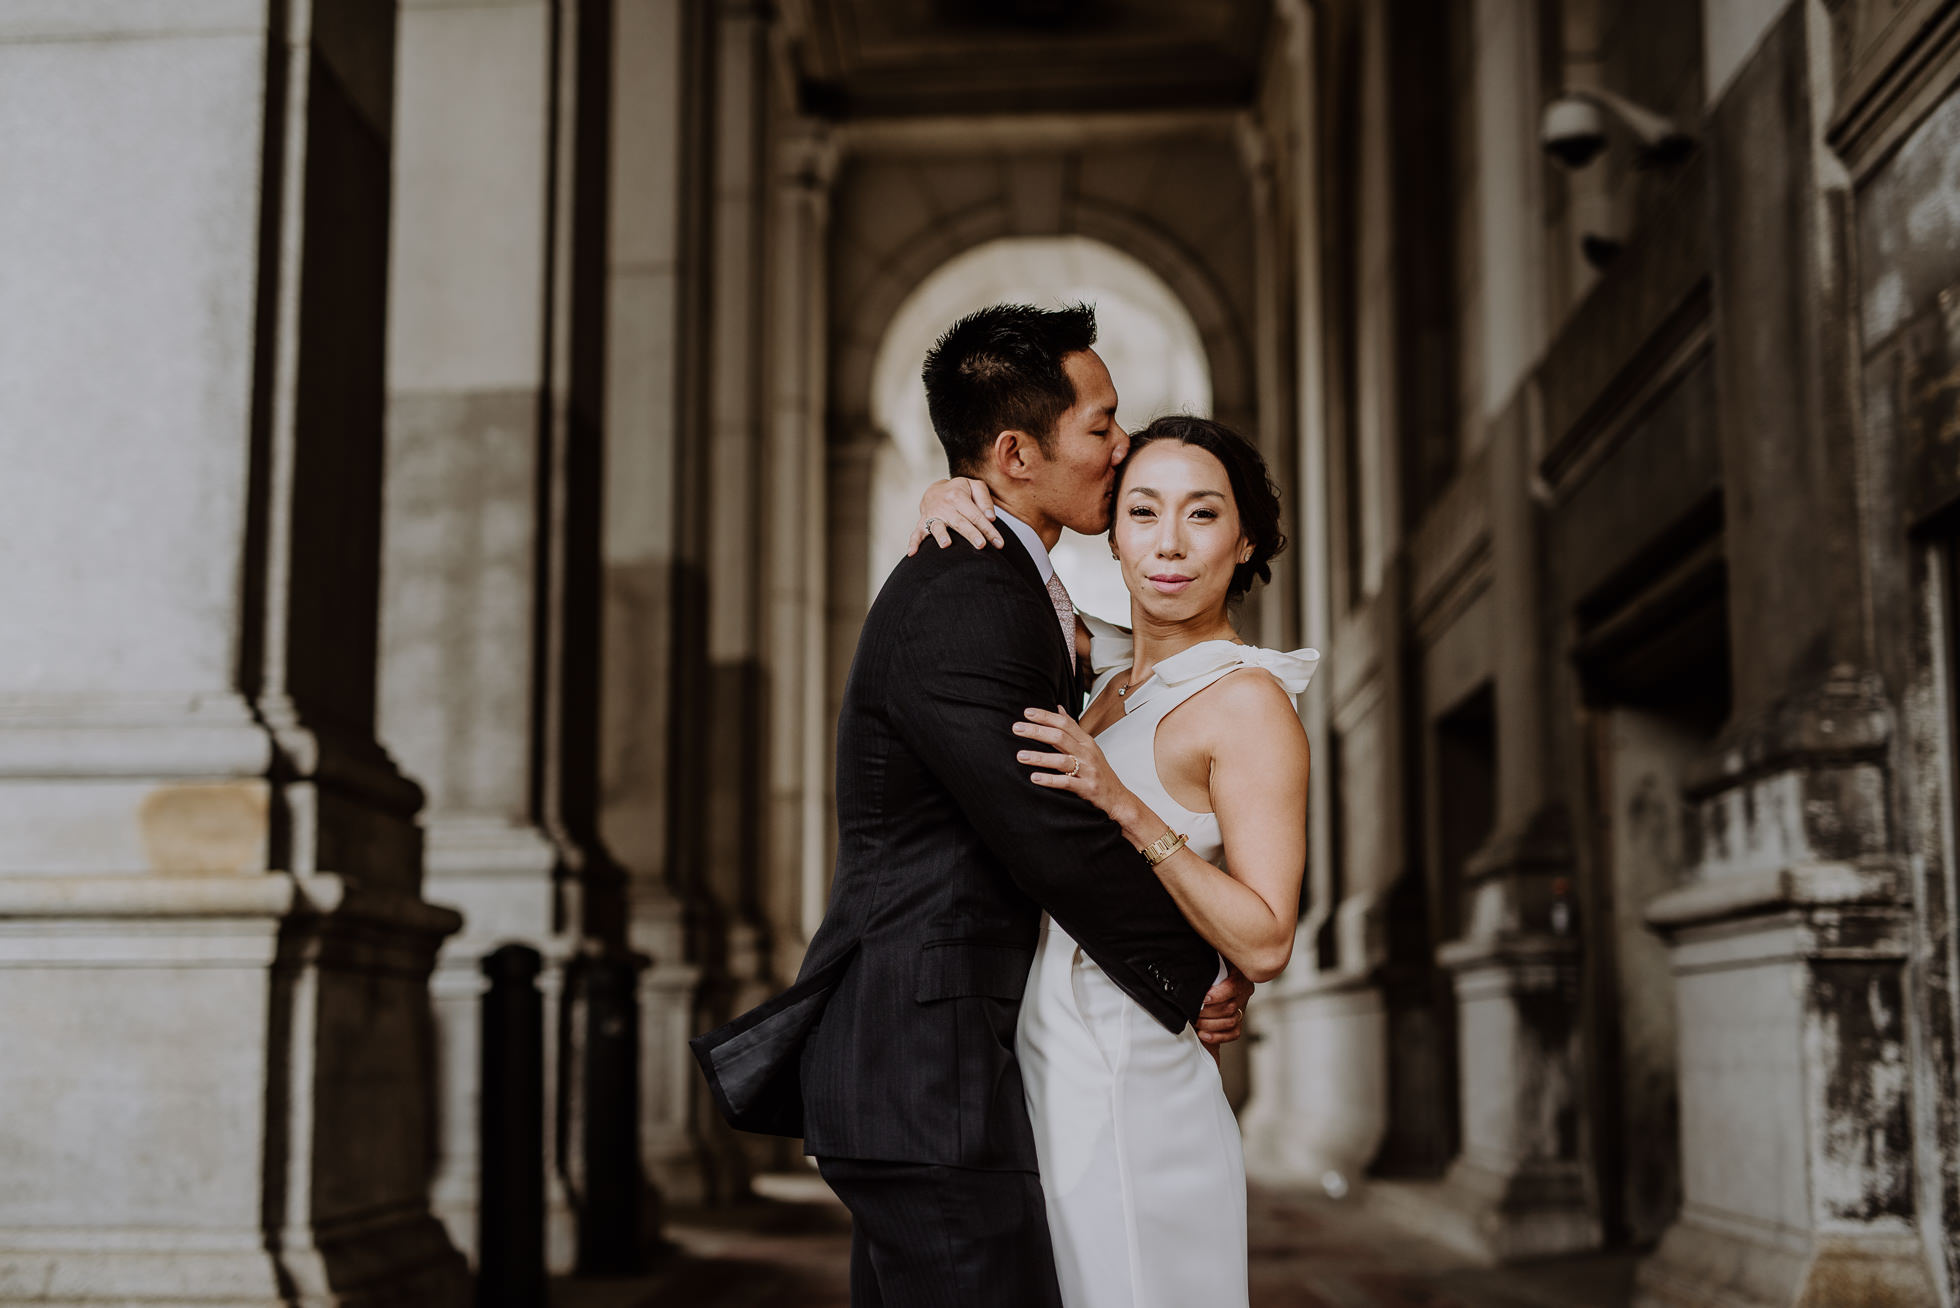 NYC city hall wedding photographers